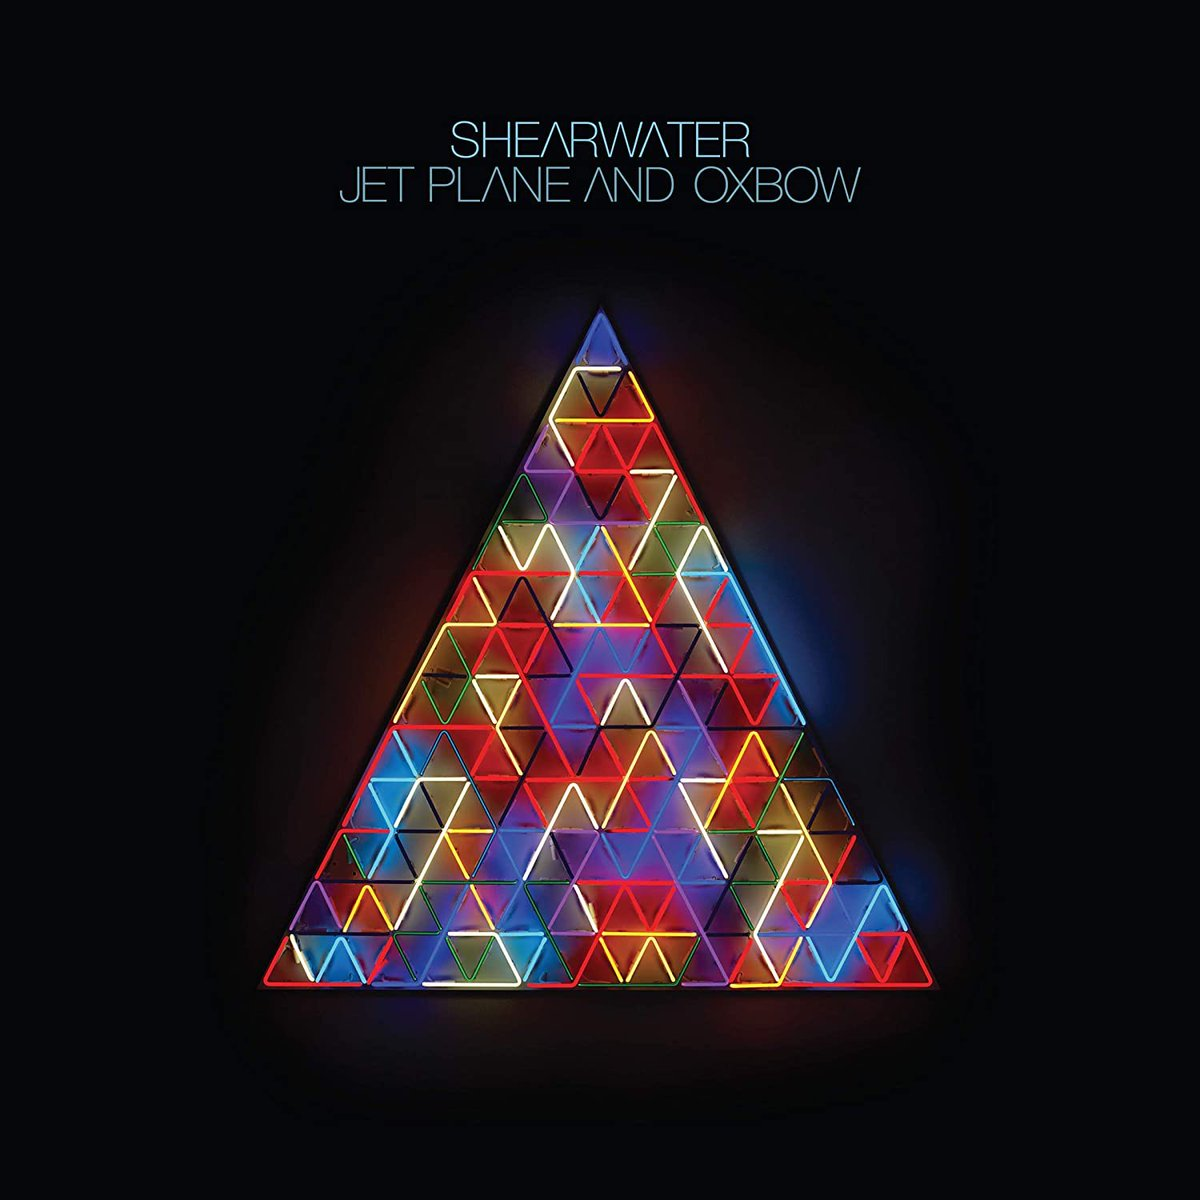 Monday October 12th 10pm (U.K. time) @ShearwaterBand will be our guest hosts for a @LlSTENlNG_PARTY featuring their album Jet Plane and Oxbow Join us